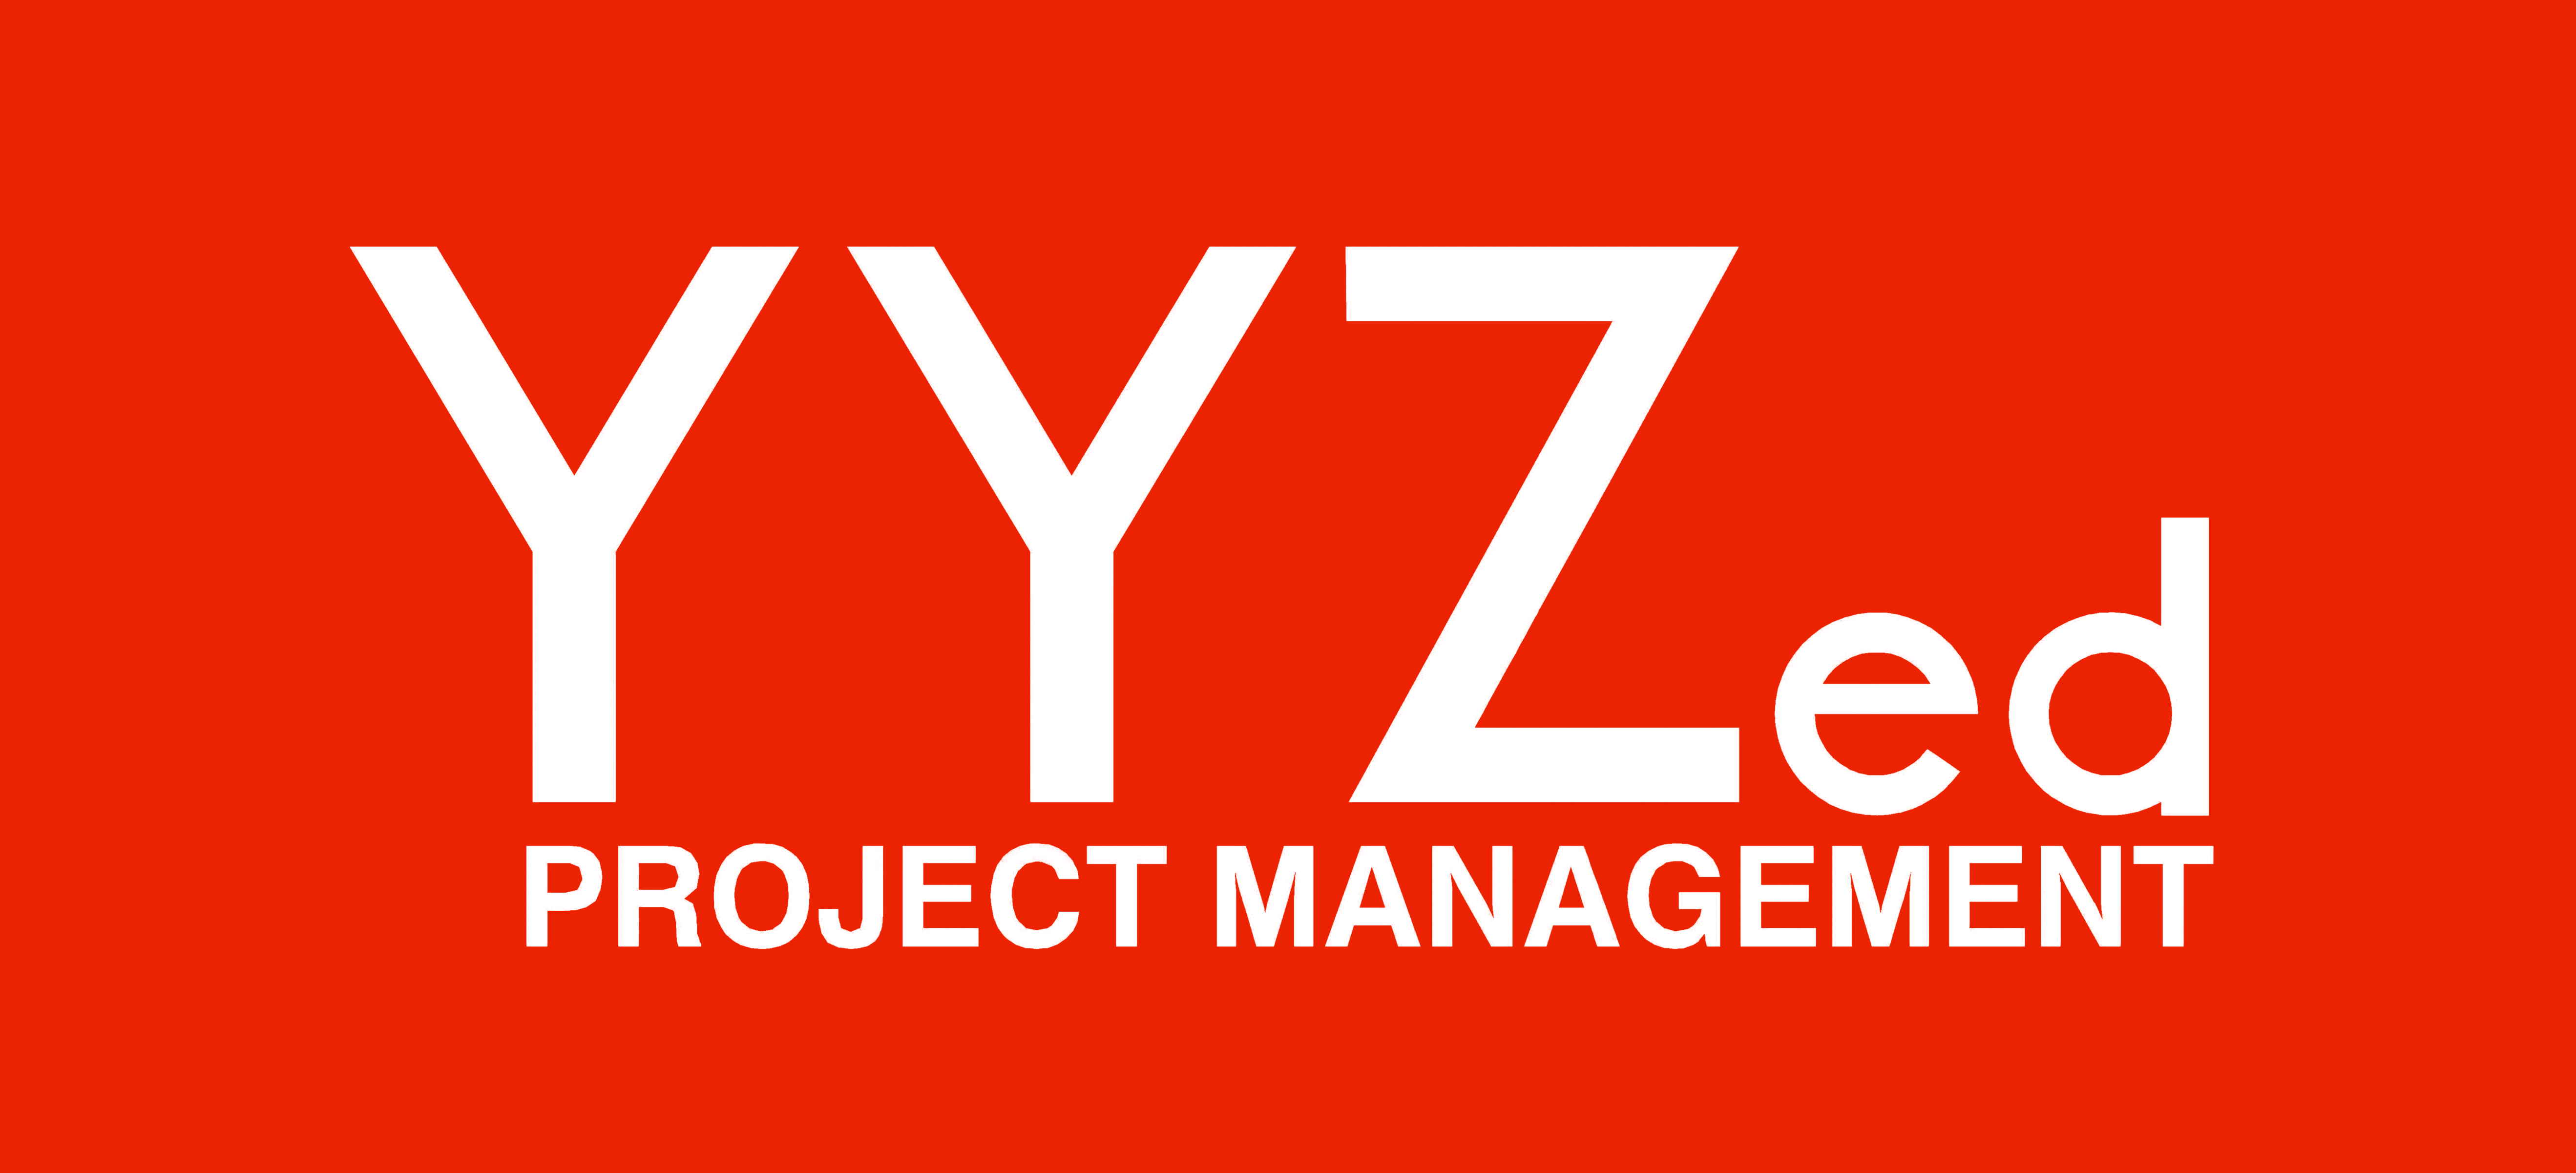 YYZed – Property Management